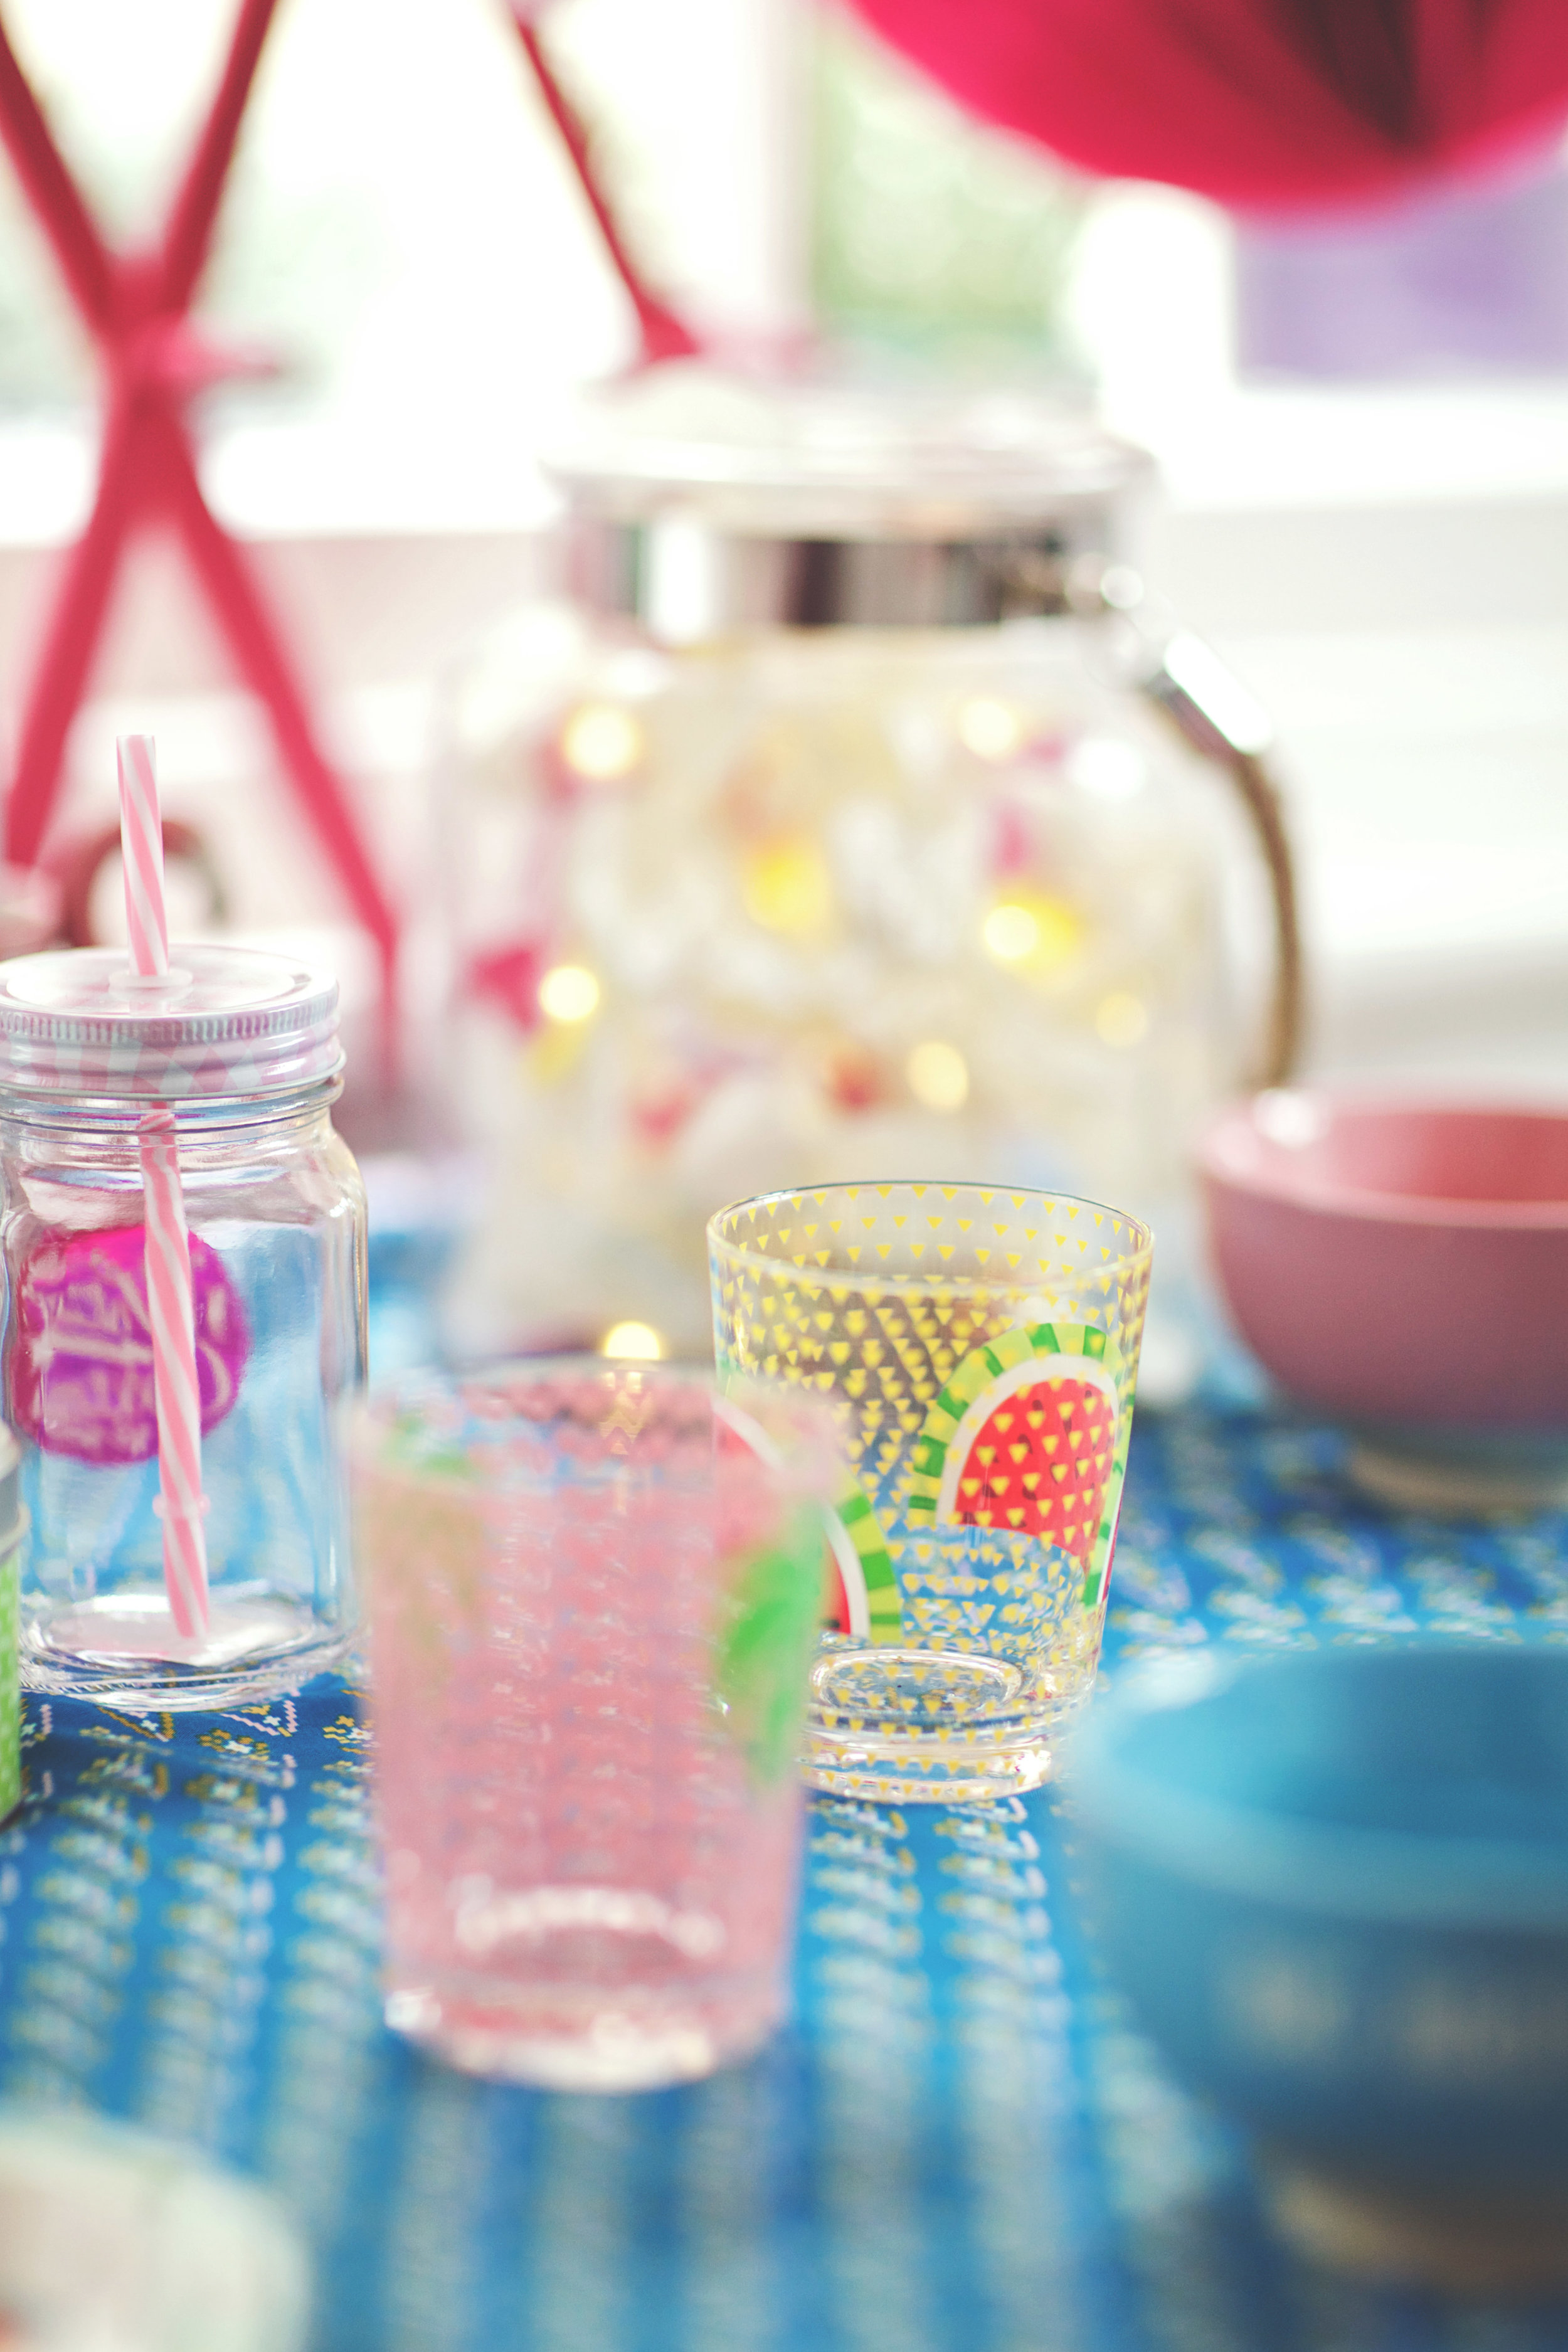 Watermelon Glass: £2.50 // Glass Vase: From £17.00 // Orchid Flower Lights: £10.00